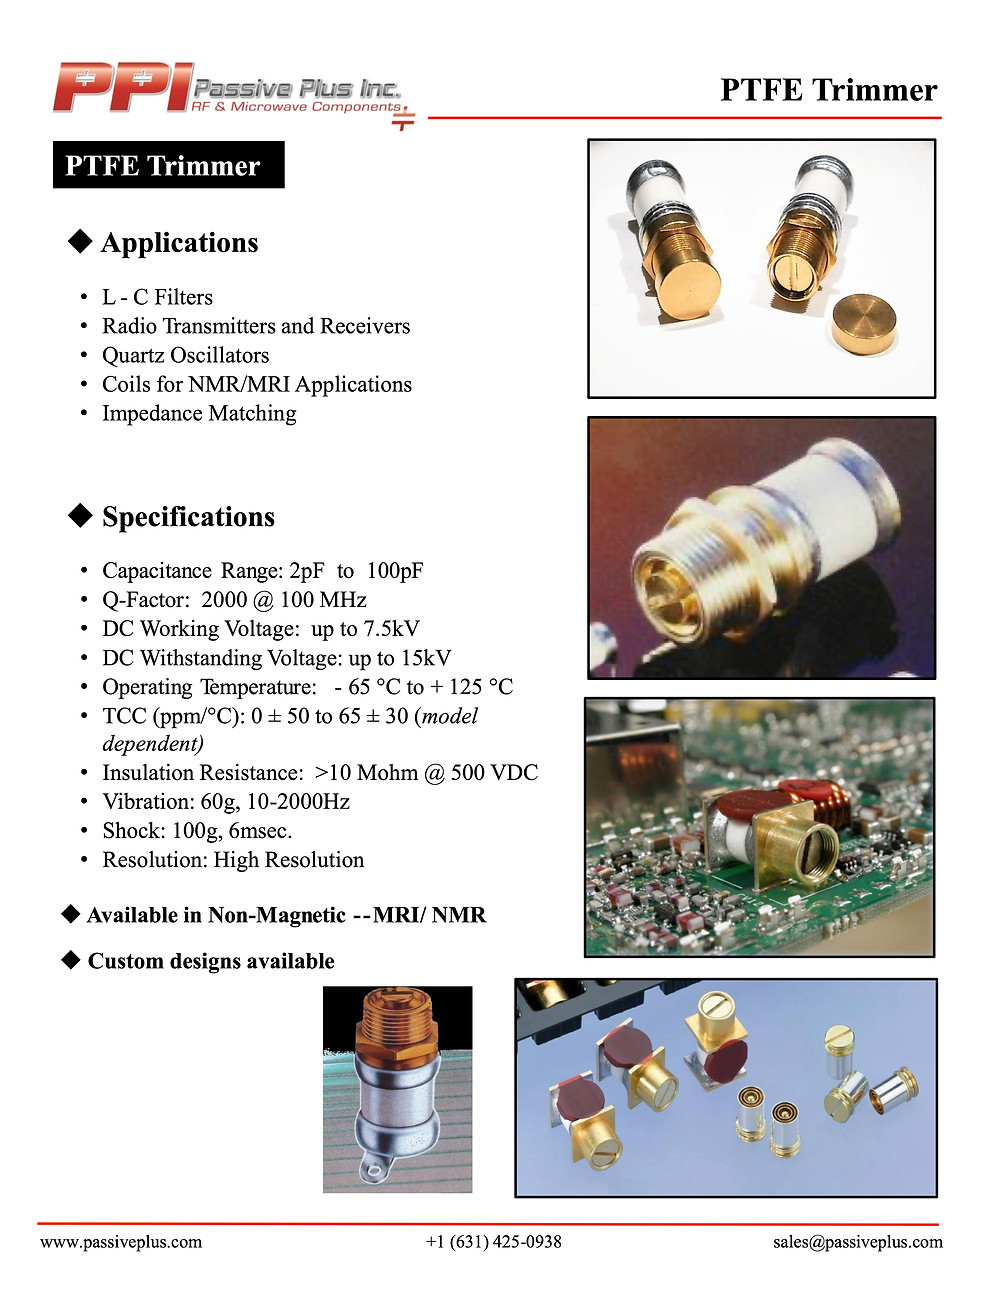 Passive Plus PTFE Trimmer Capacitor Data Sheet